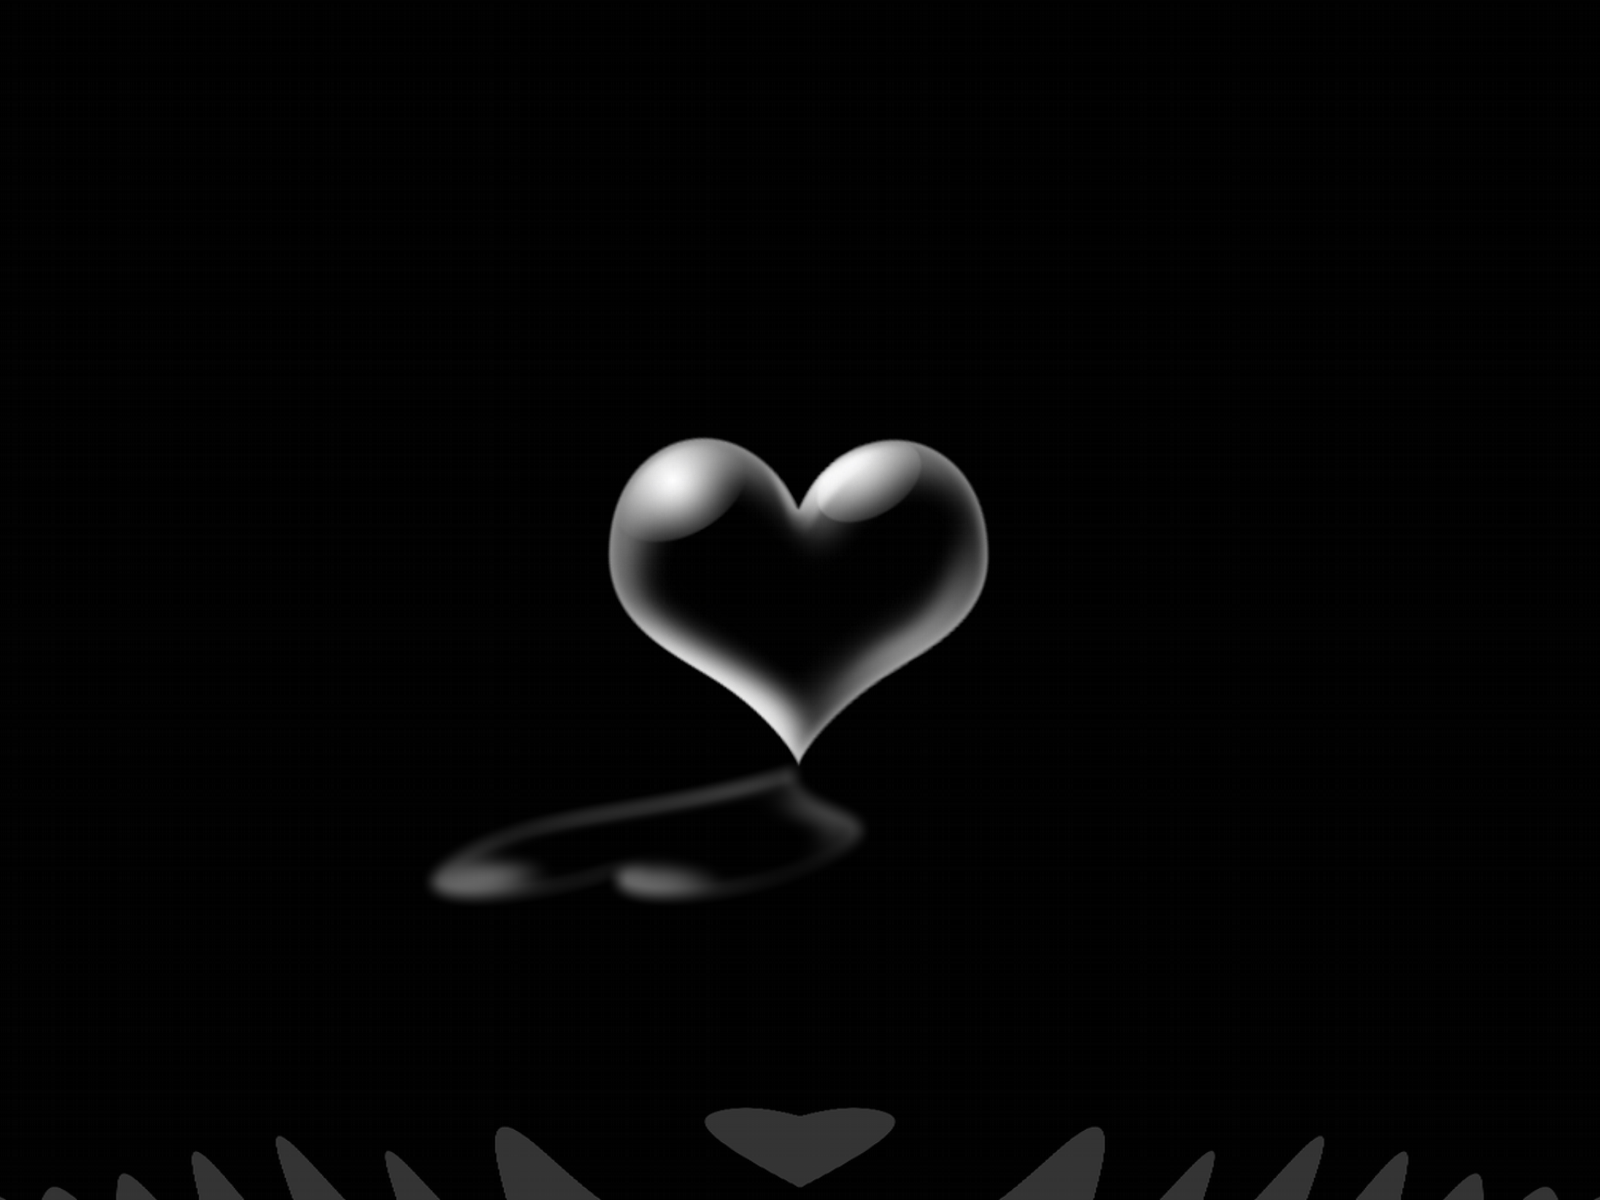 Love Wallpaper Black Background : Black images Black Heart HD wallpaper and background ...